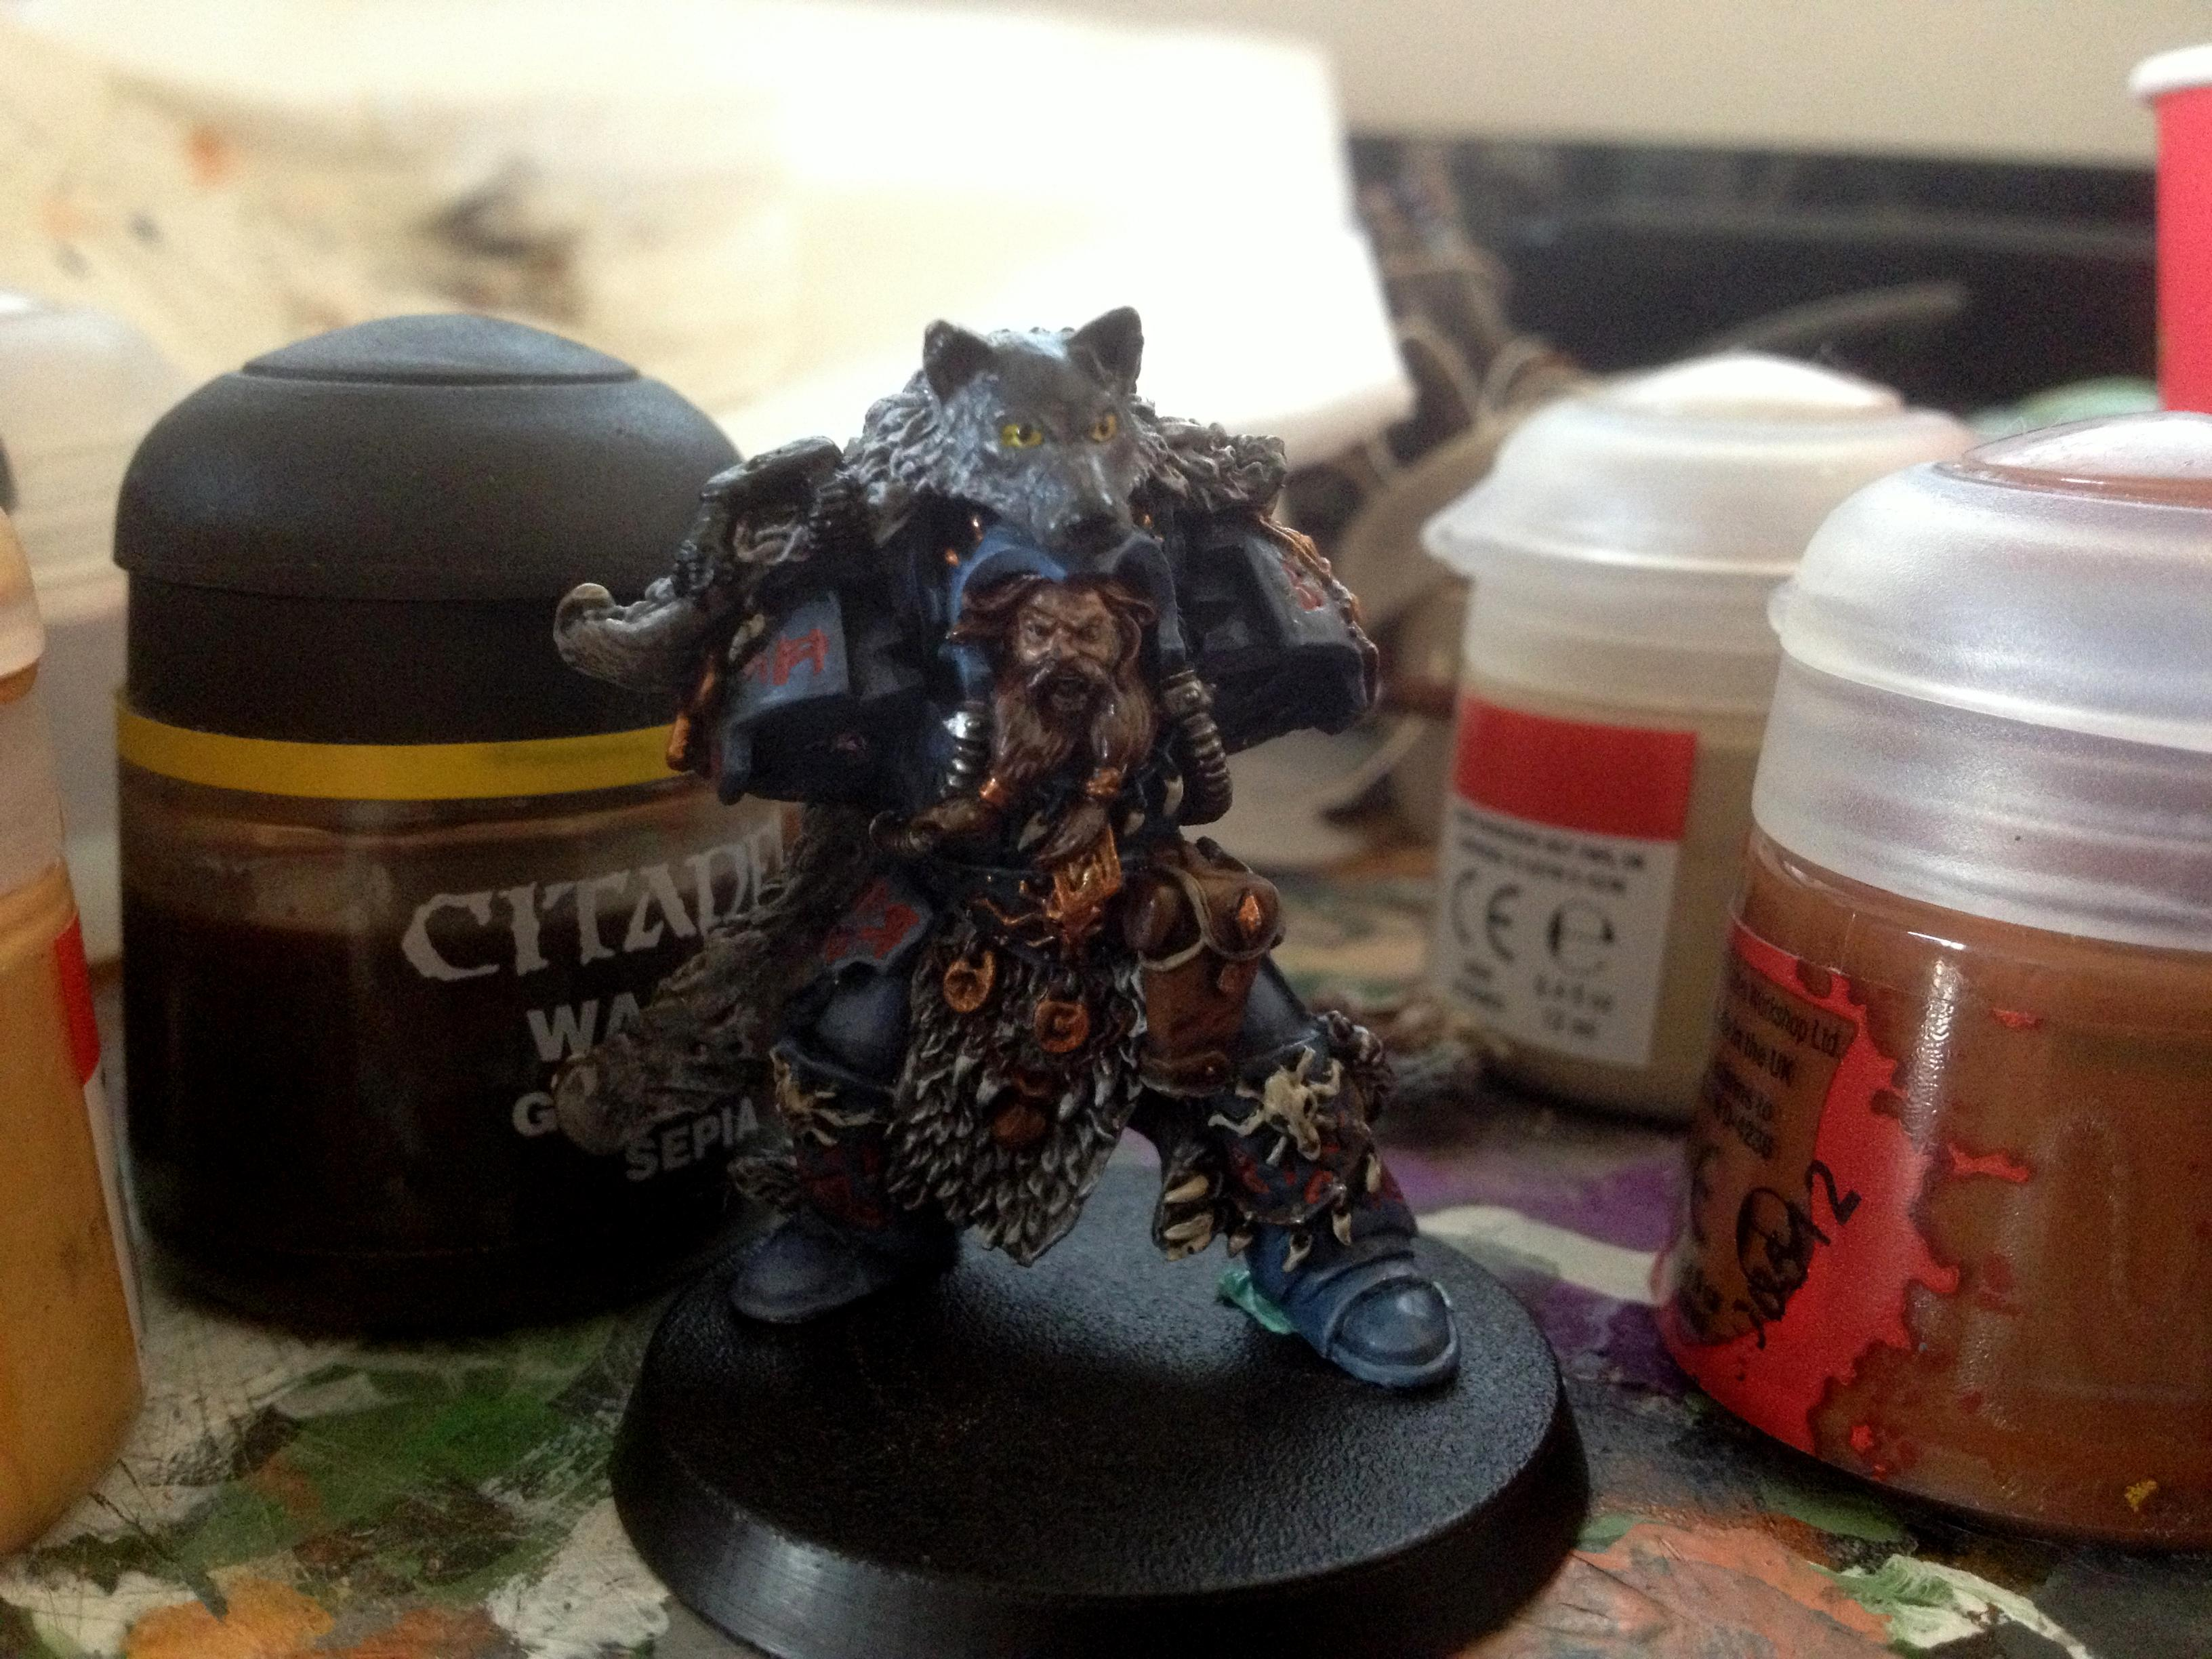 Njal, Njal Stormcaller, Space Marines, Space Wolfs, Space Wolves, Terminator Armor, Vip